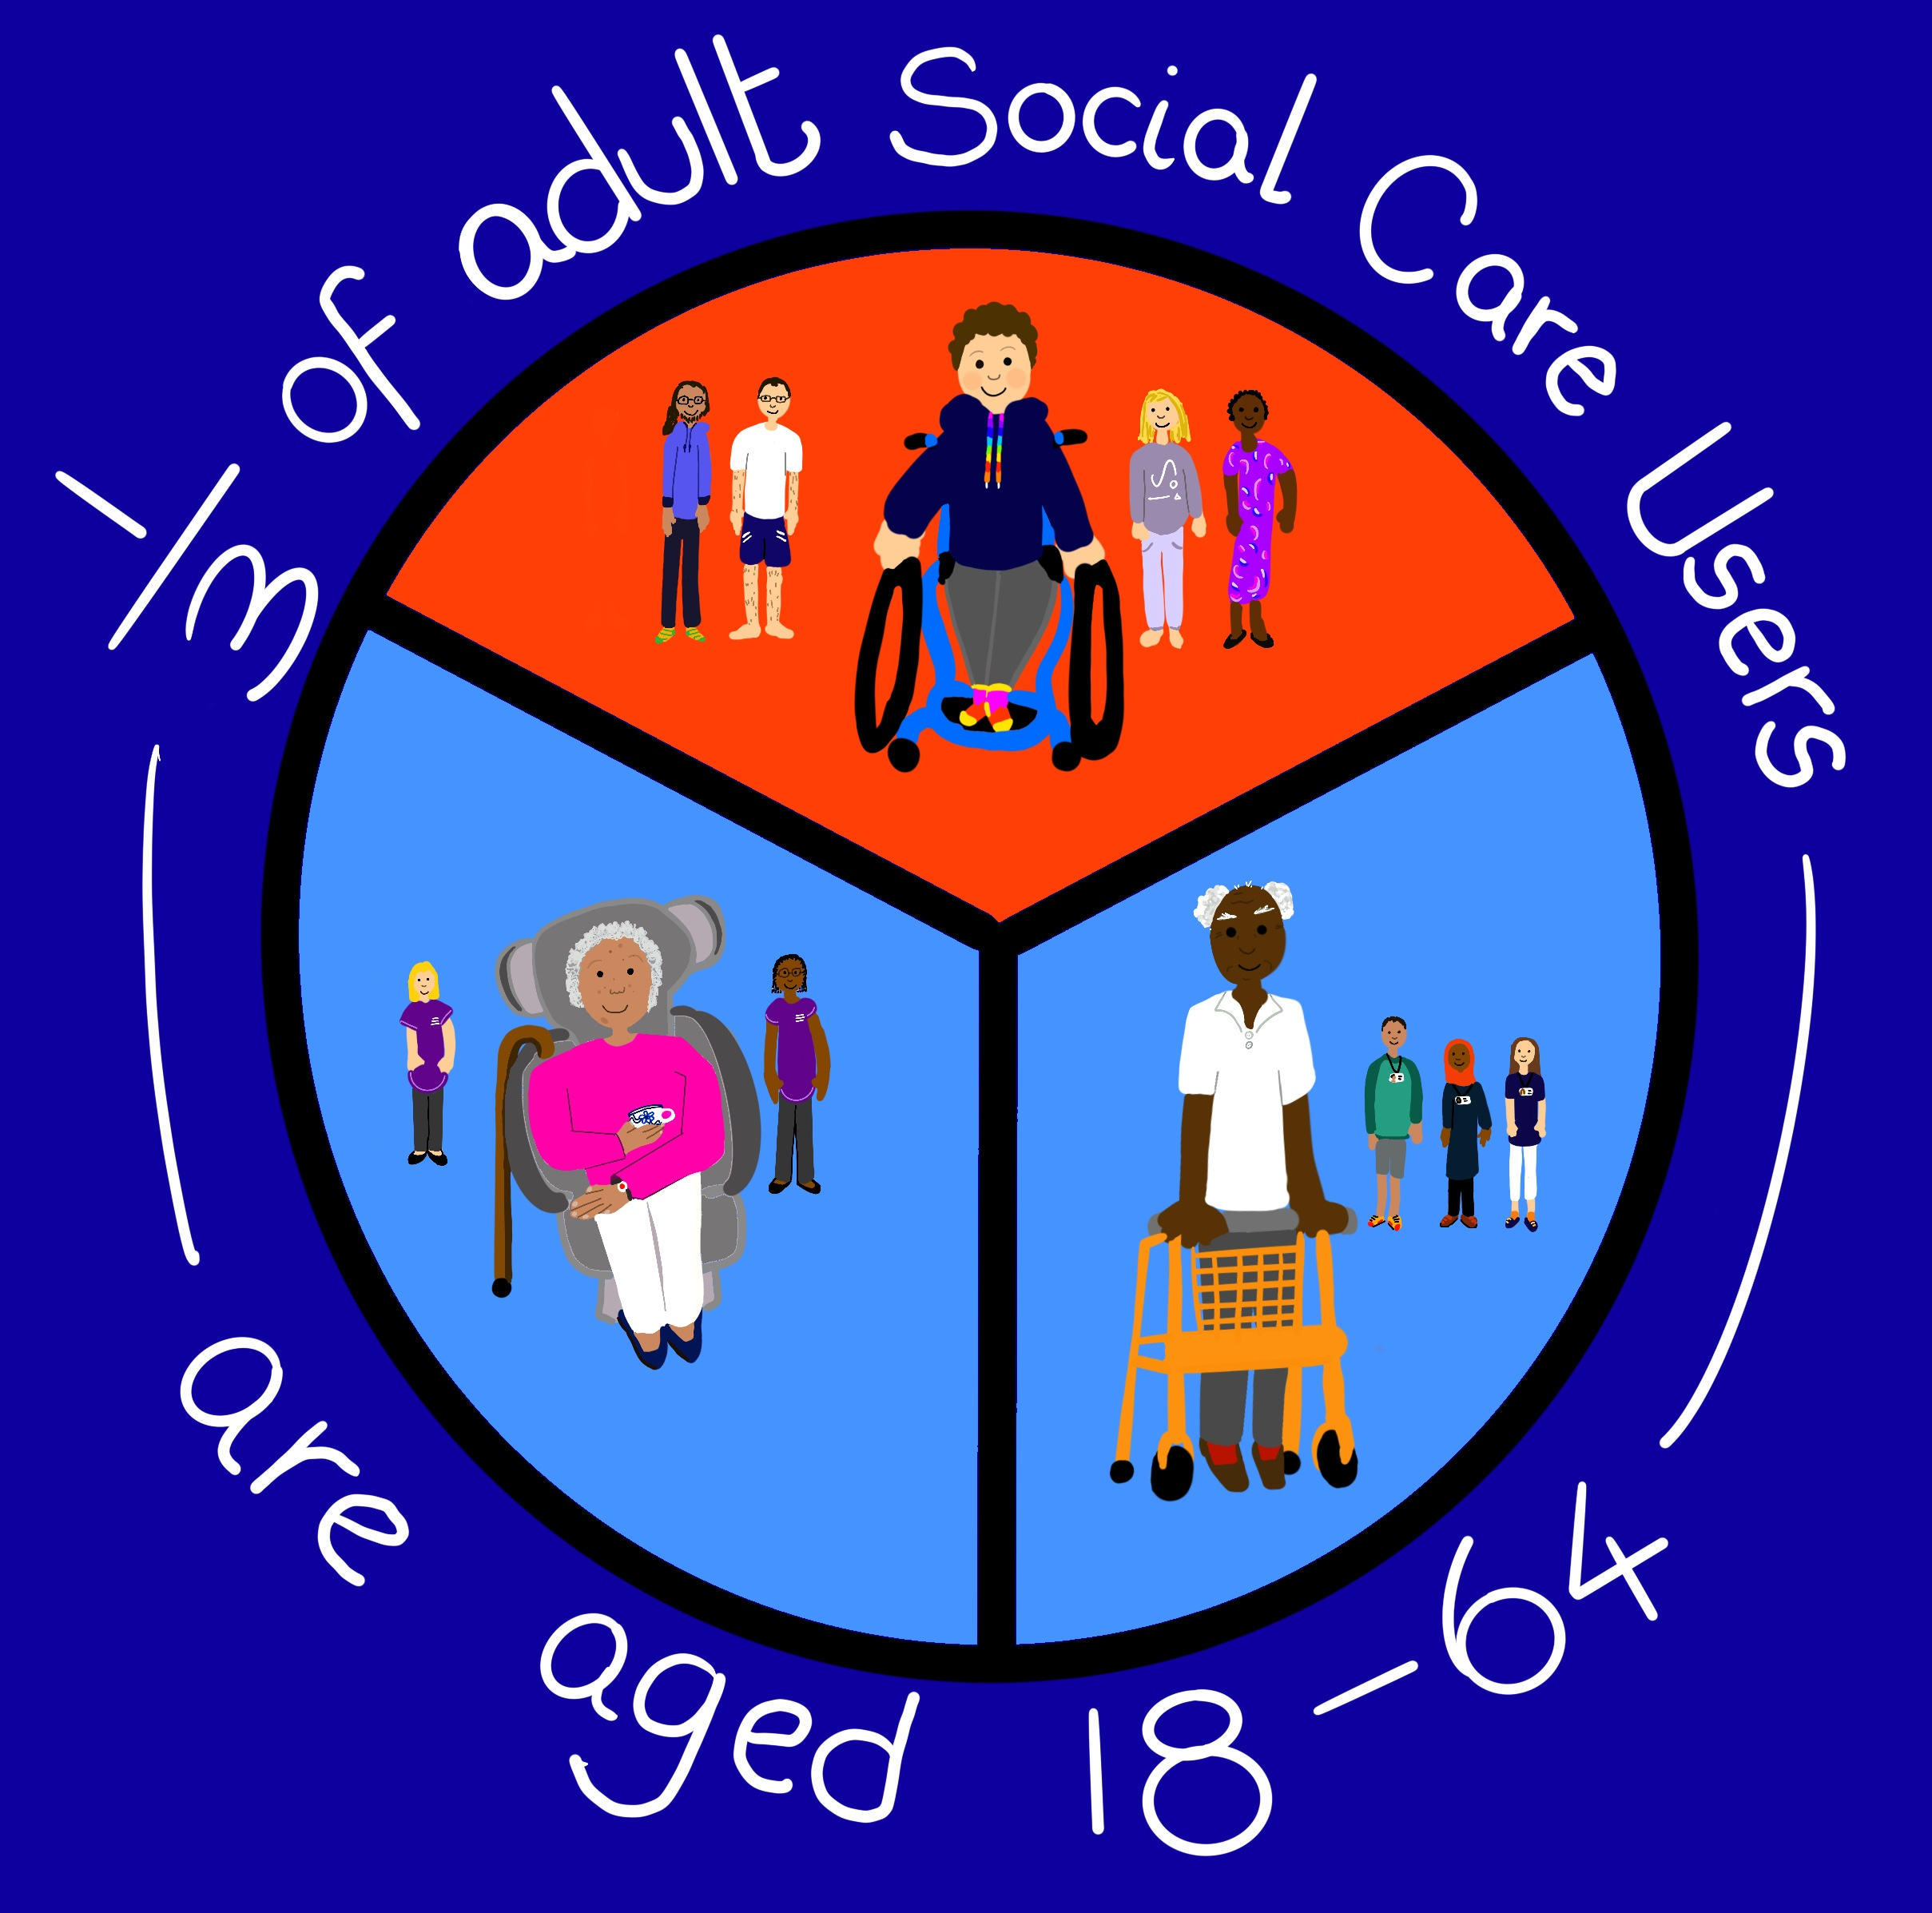 Image shows a digital drawing by Touretteshero. It is an illustration of a pie chart split in three with the message surrounding pie chart that says '1/3 of adult Social Care Users are aged 18 - 64'. The segment at the top contains an illustration of Touretteshero in the foreground with Erik and Leftwing Idiot standing behind her to her left and Claire and Bovie who are standing to her right. Touretteshero is smiling with her hands placed on the wheels of her wheelchair and is wearing a navy hoodie with rainbow drawstrings and colourful striped magenta, red and yellow socks. Erik is wearing a blue hoody and black trousers, Leftwing Idiot is wearing a white t-shirt and navy shorts, Claire is wearing lilac trousers and a mushroom coloured jumper and Movie is wearing a colourful patterned purple shin length cap sleeved dress. In the bottom left segment of the pie chart, there is an illustration of an elderly woman sitting in a recliner chair. She is smiling wearing a magenta jumper and white trousers. A walking stick hangs on her chair. Standing behind her are two support workers dressed in purple uniforms. In the final 1/3 of the pie chart on the bottom right is an elderly man standing with a yellow walker with 3 social workers stood behind him.